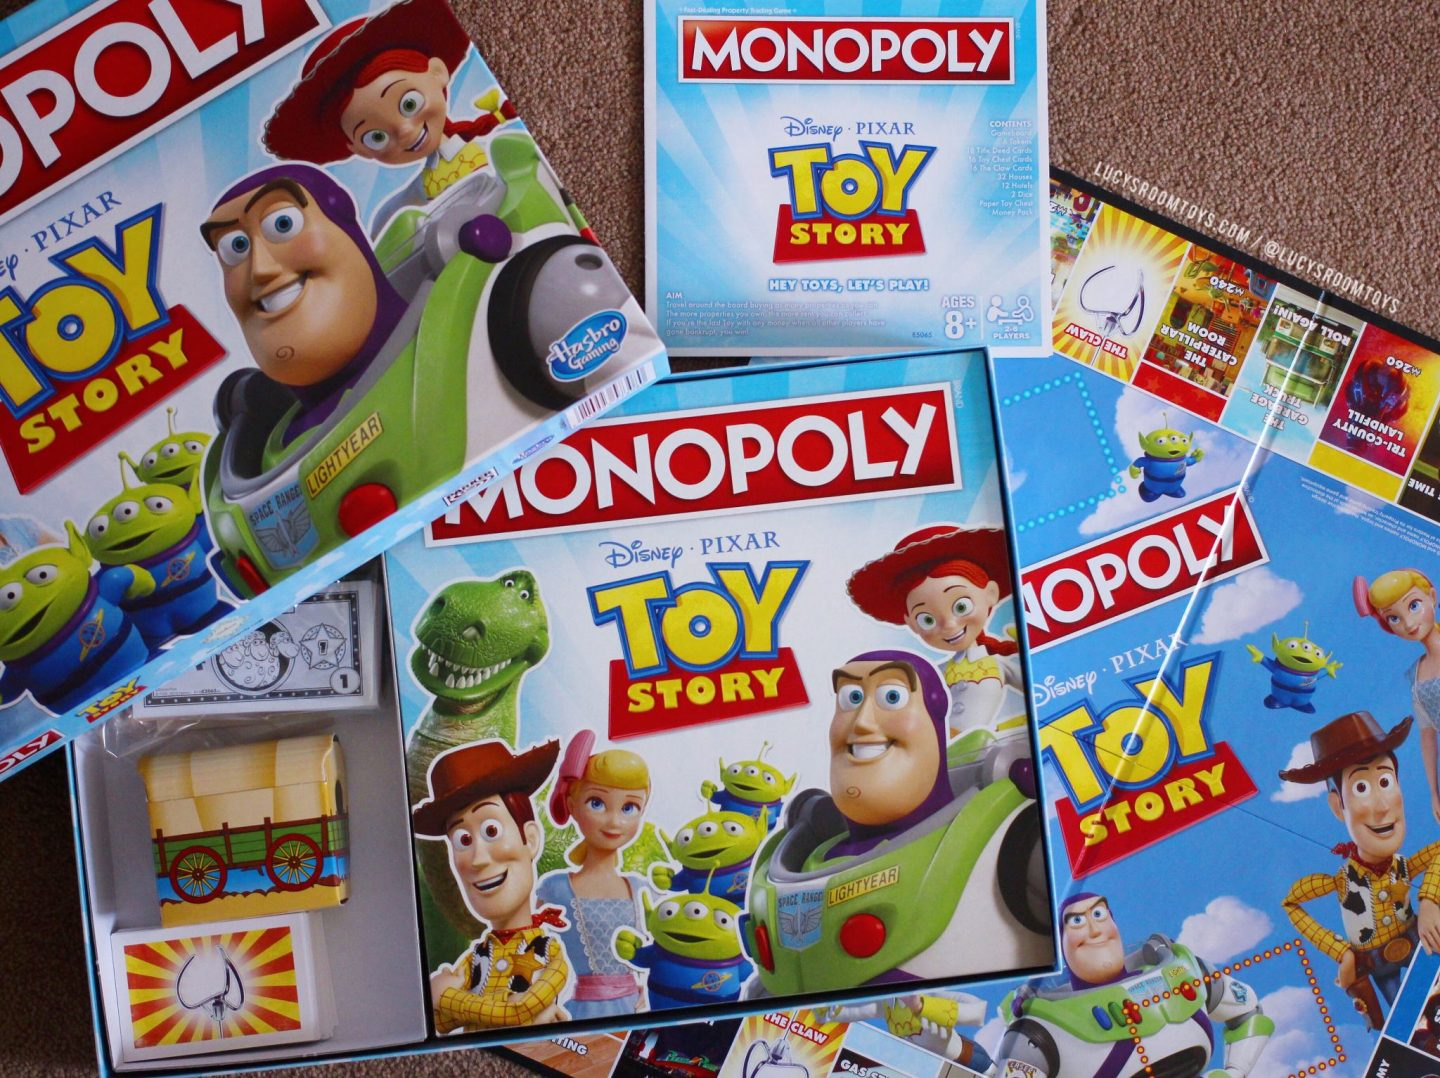 Toy Story Monopoly